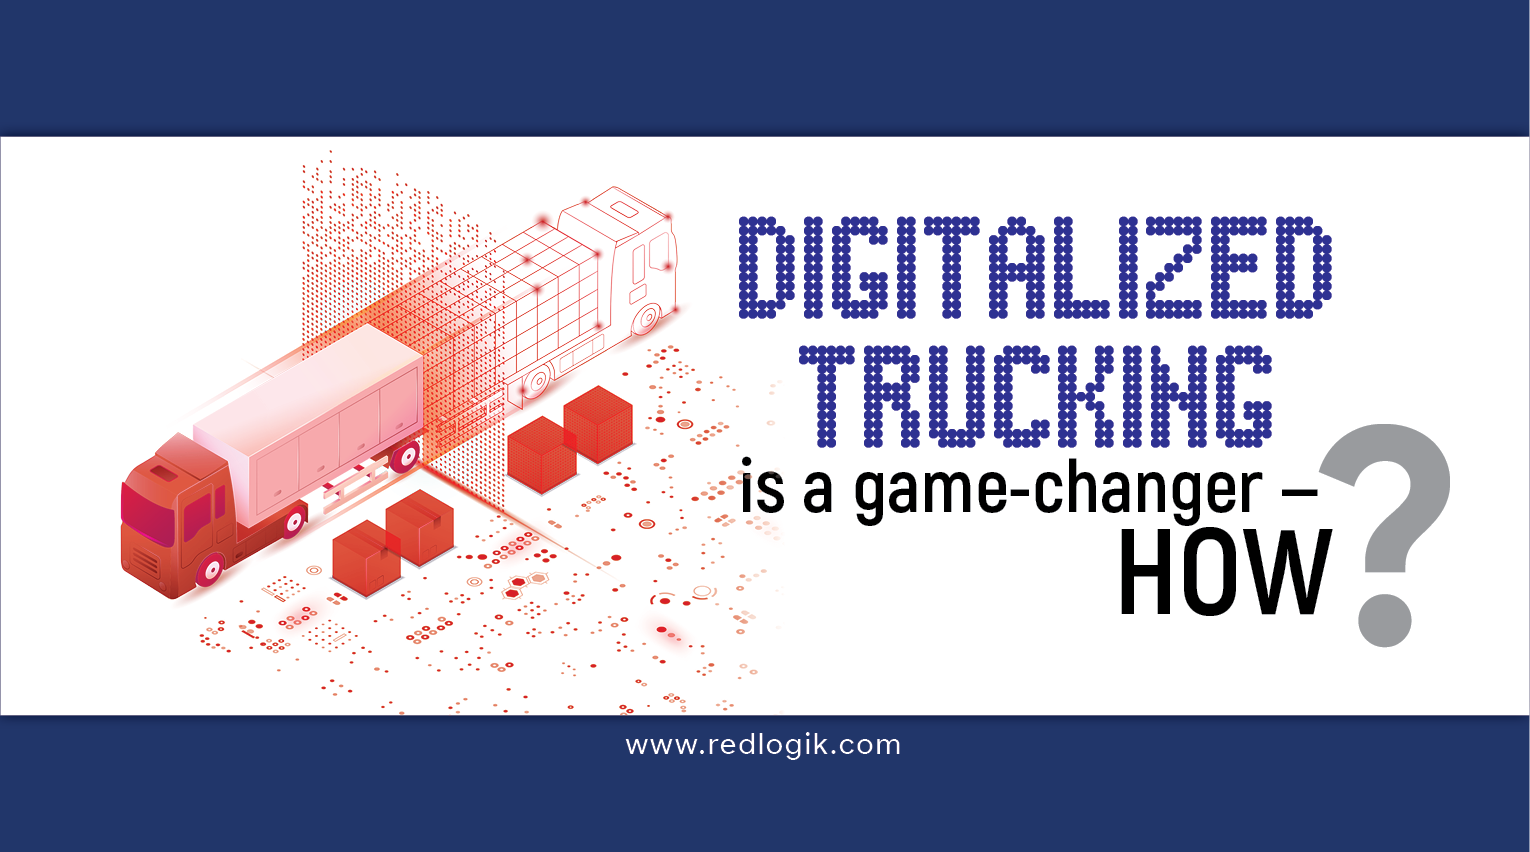 Digitalized trucking- the modern day logistics solution